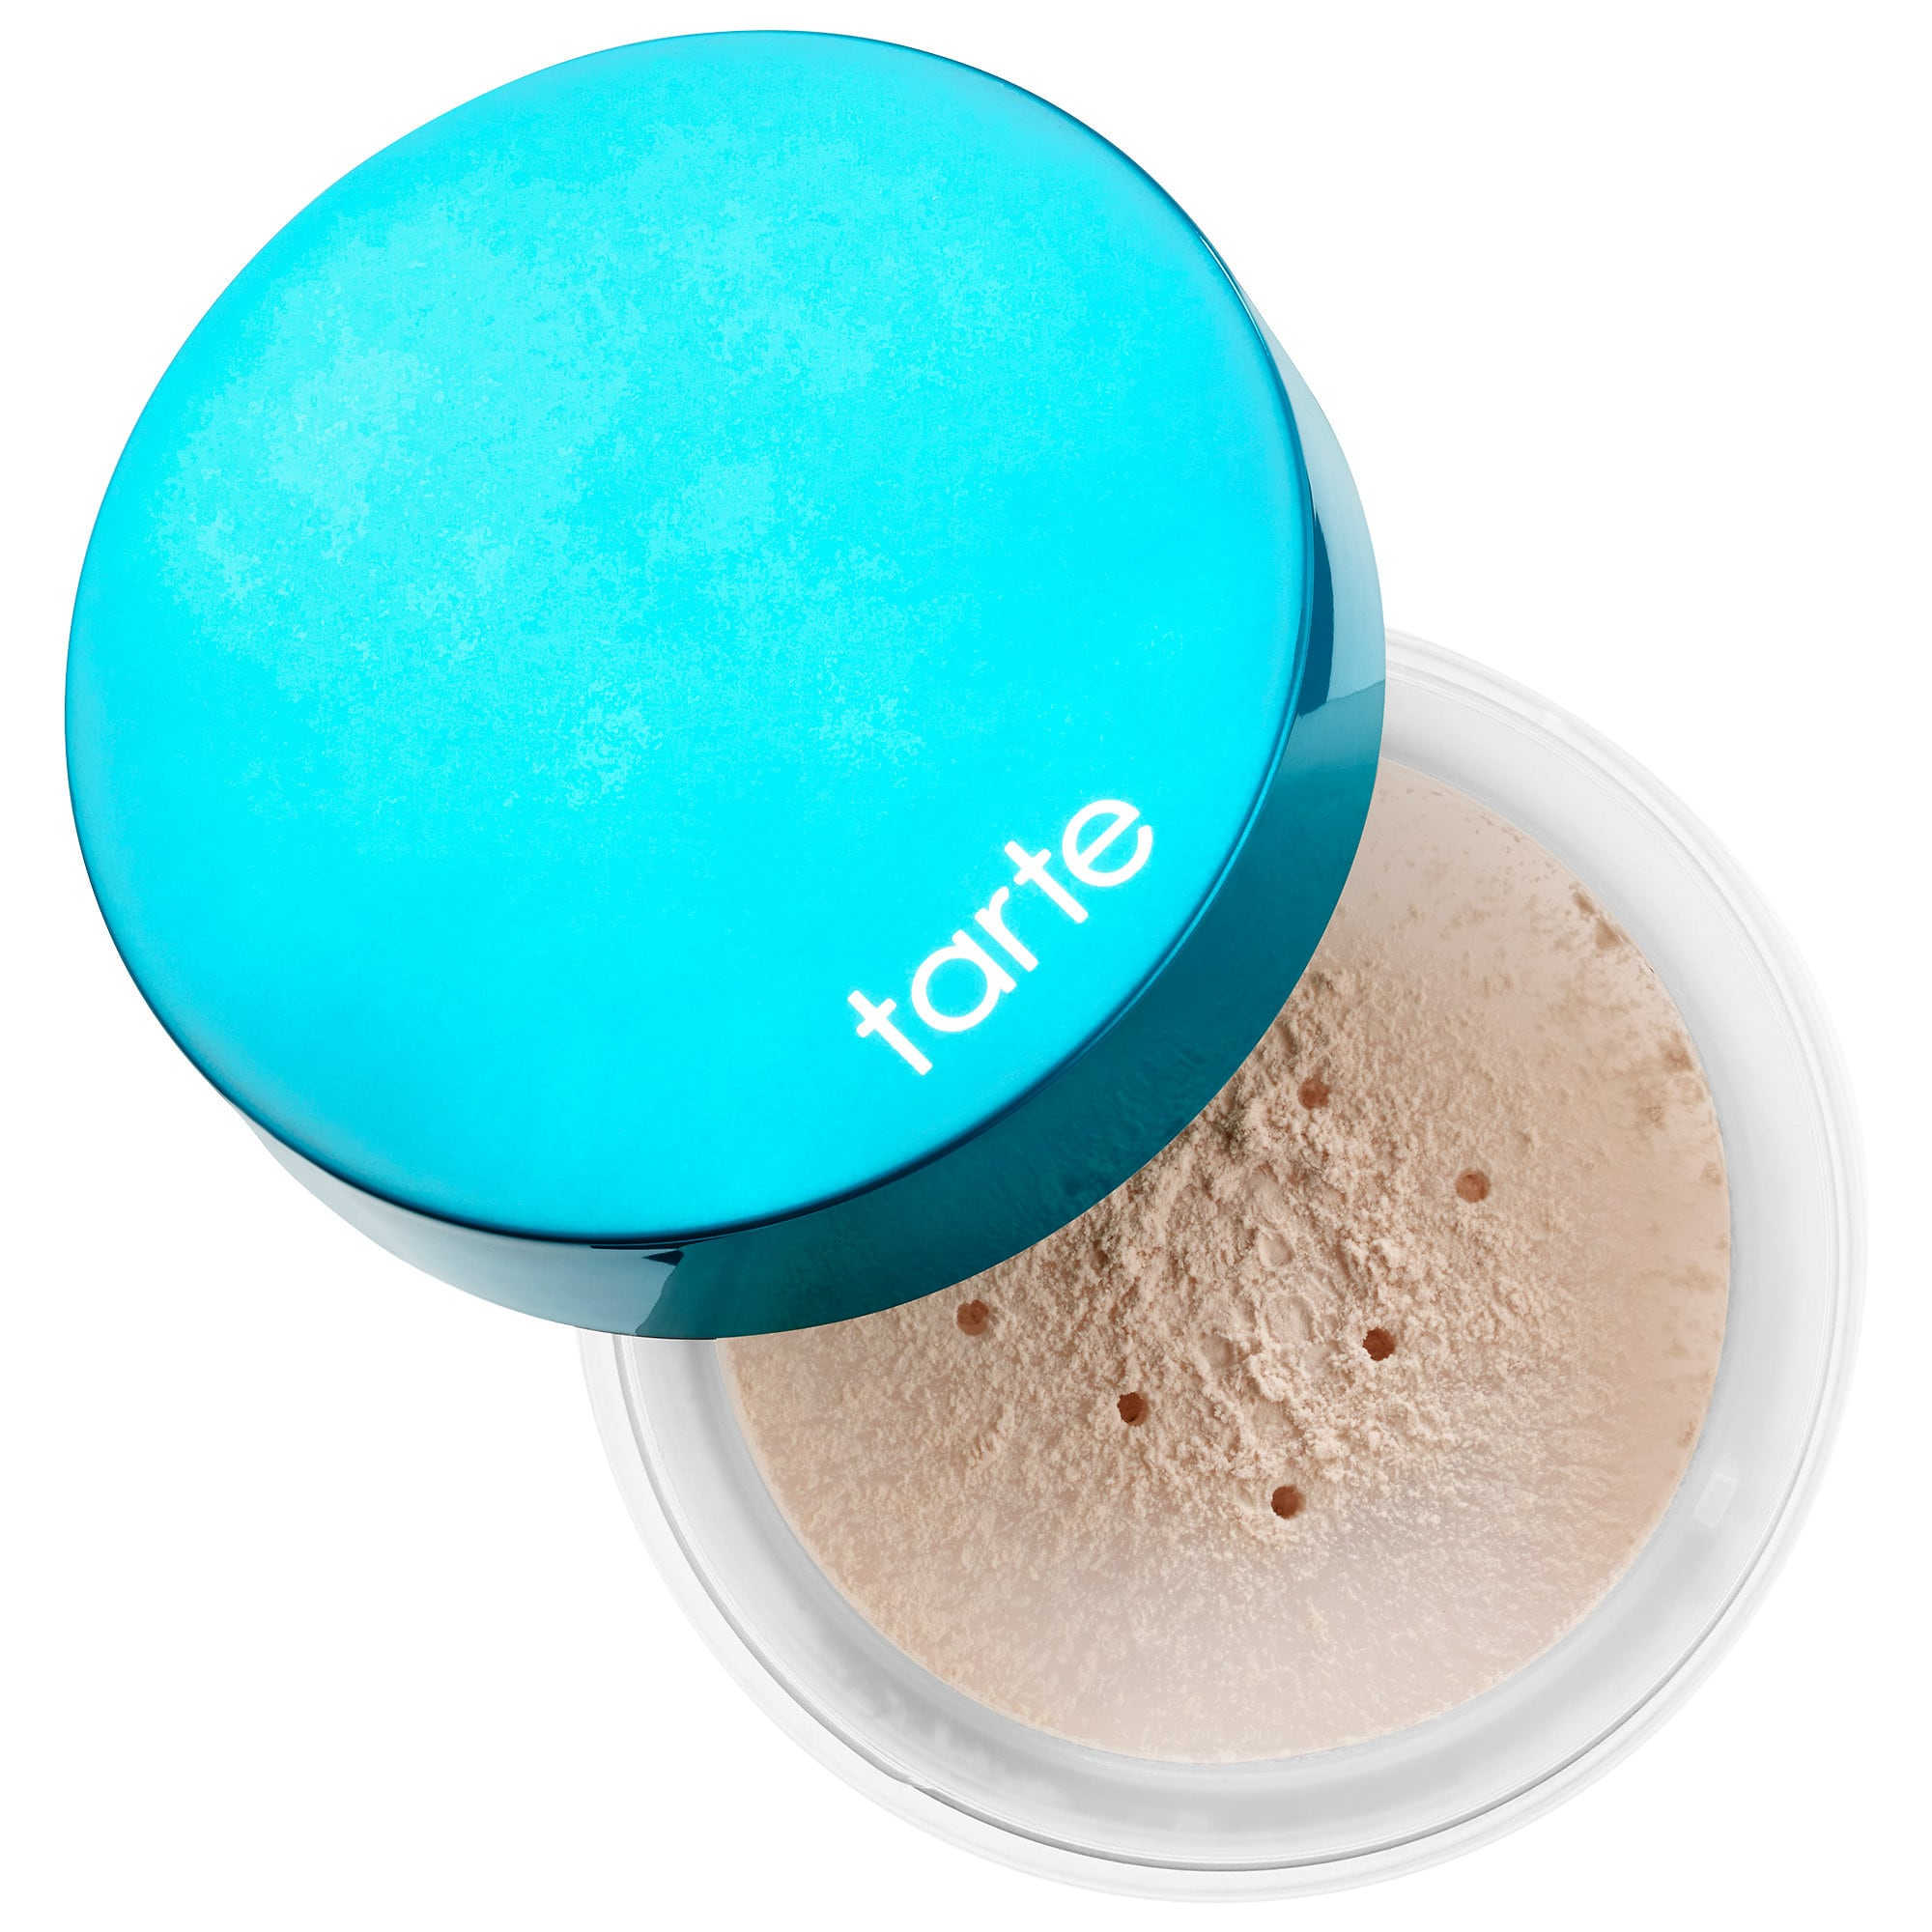 Filtered Light Setting Powder - Rainforest of the Sea™ Collection